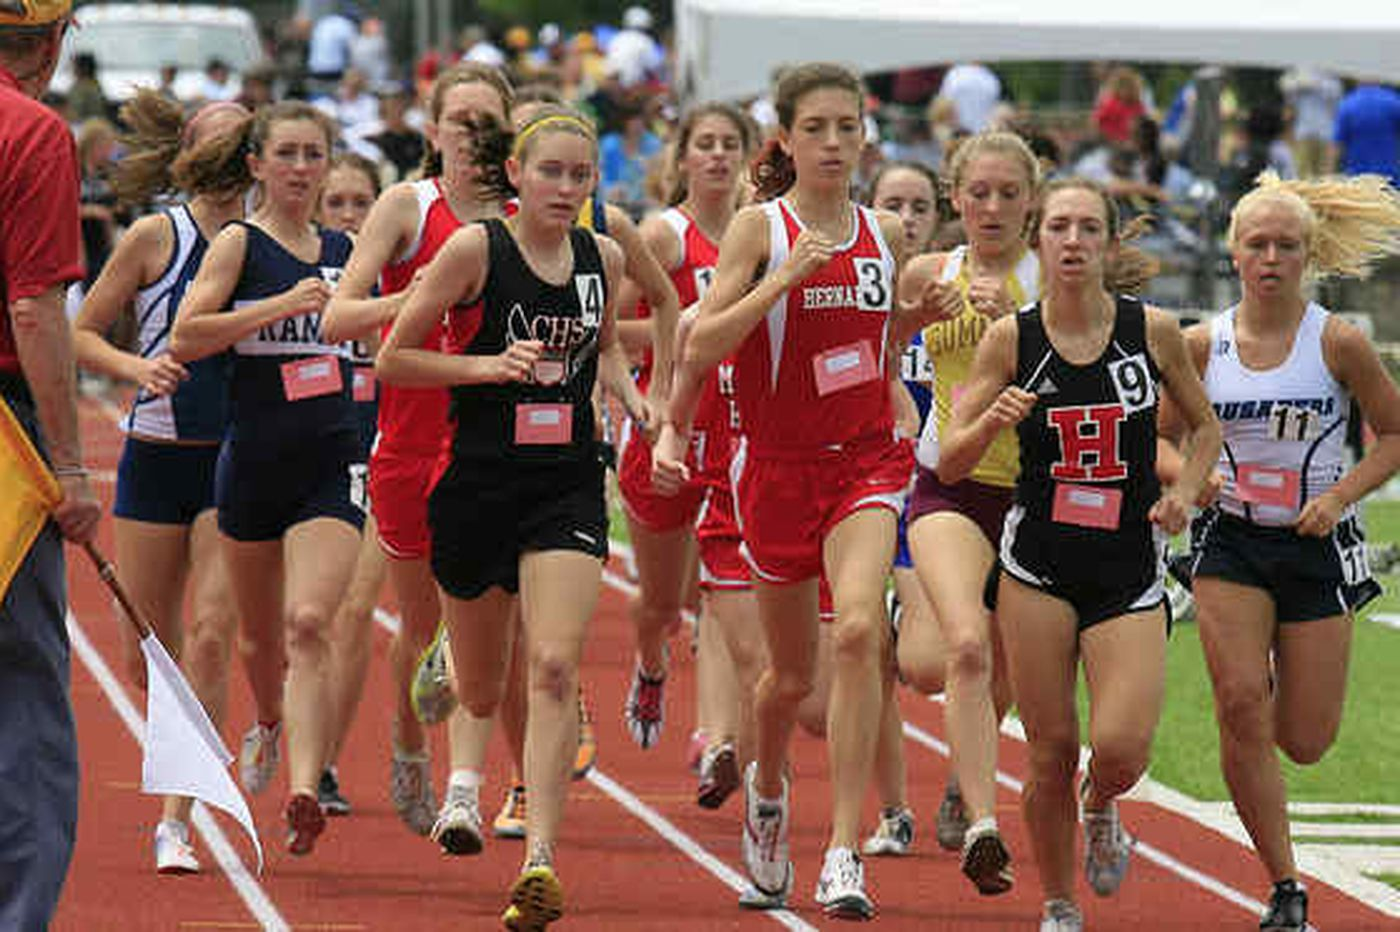 Delsea captures first outright team crown